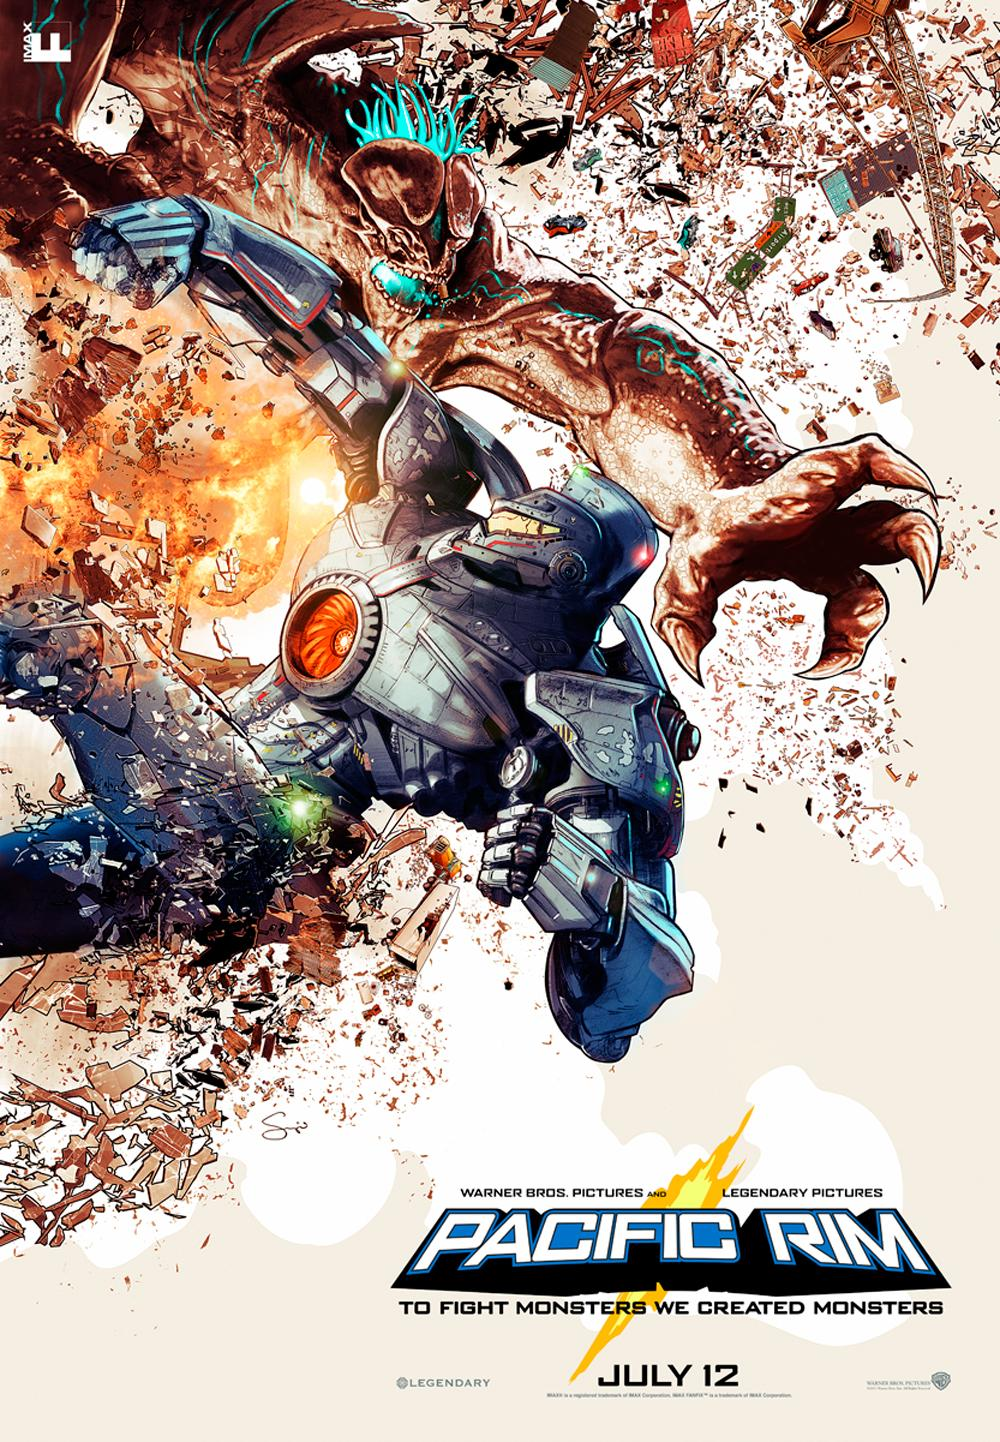 Pacific Rim IMAX Movie Poster Epic New IMAX Poster for Pacific Rim Arrives